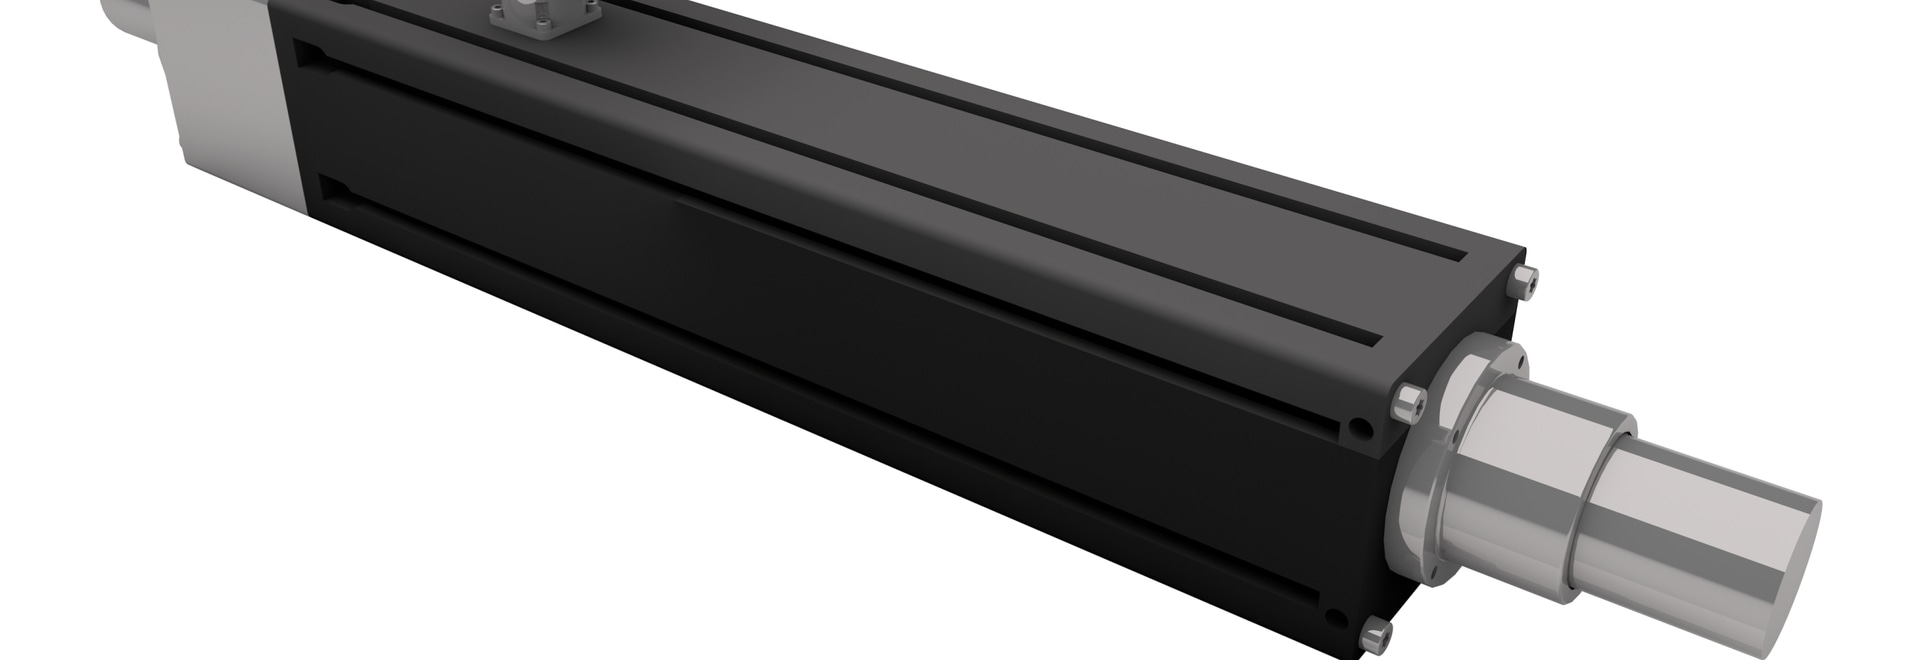 Dunkermotoren has released a linear motor concept for high-speed applications in the food and packaging industry.